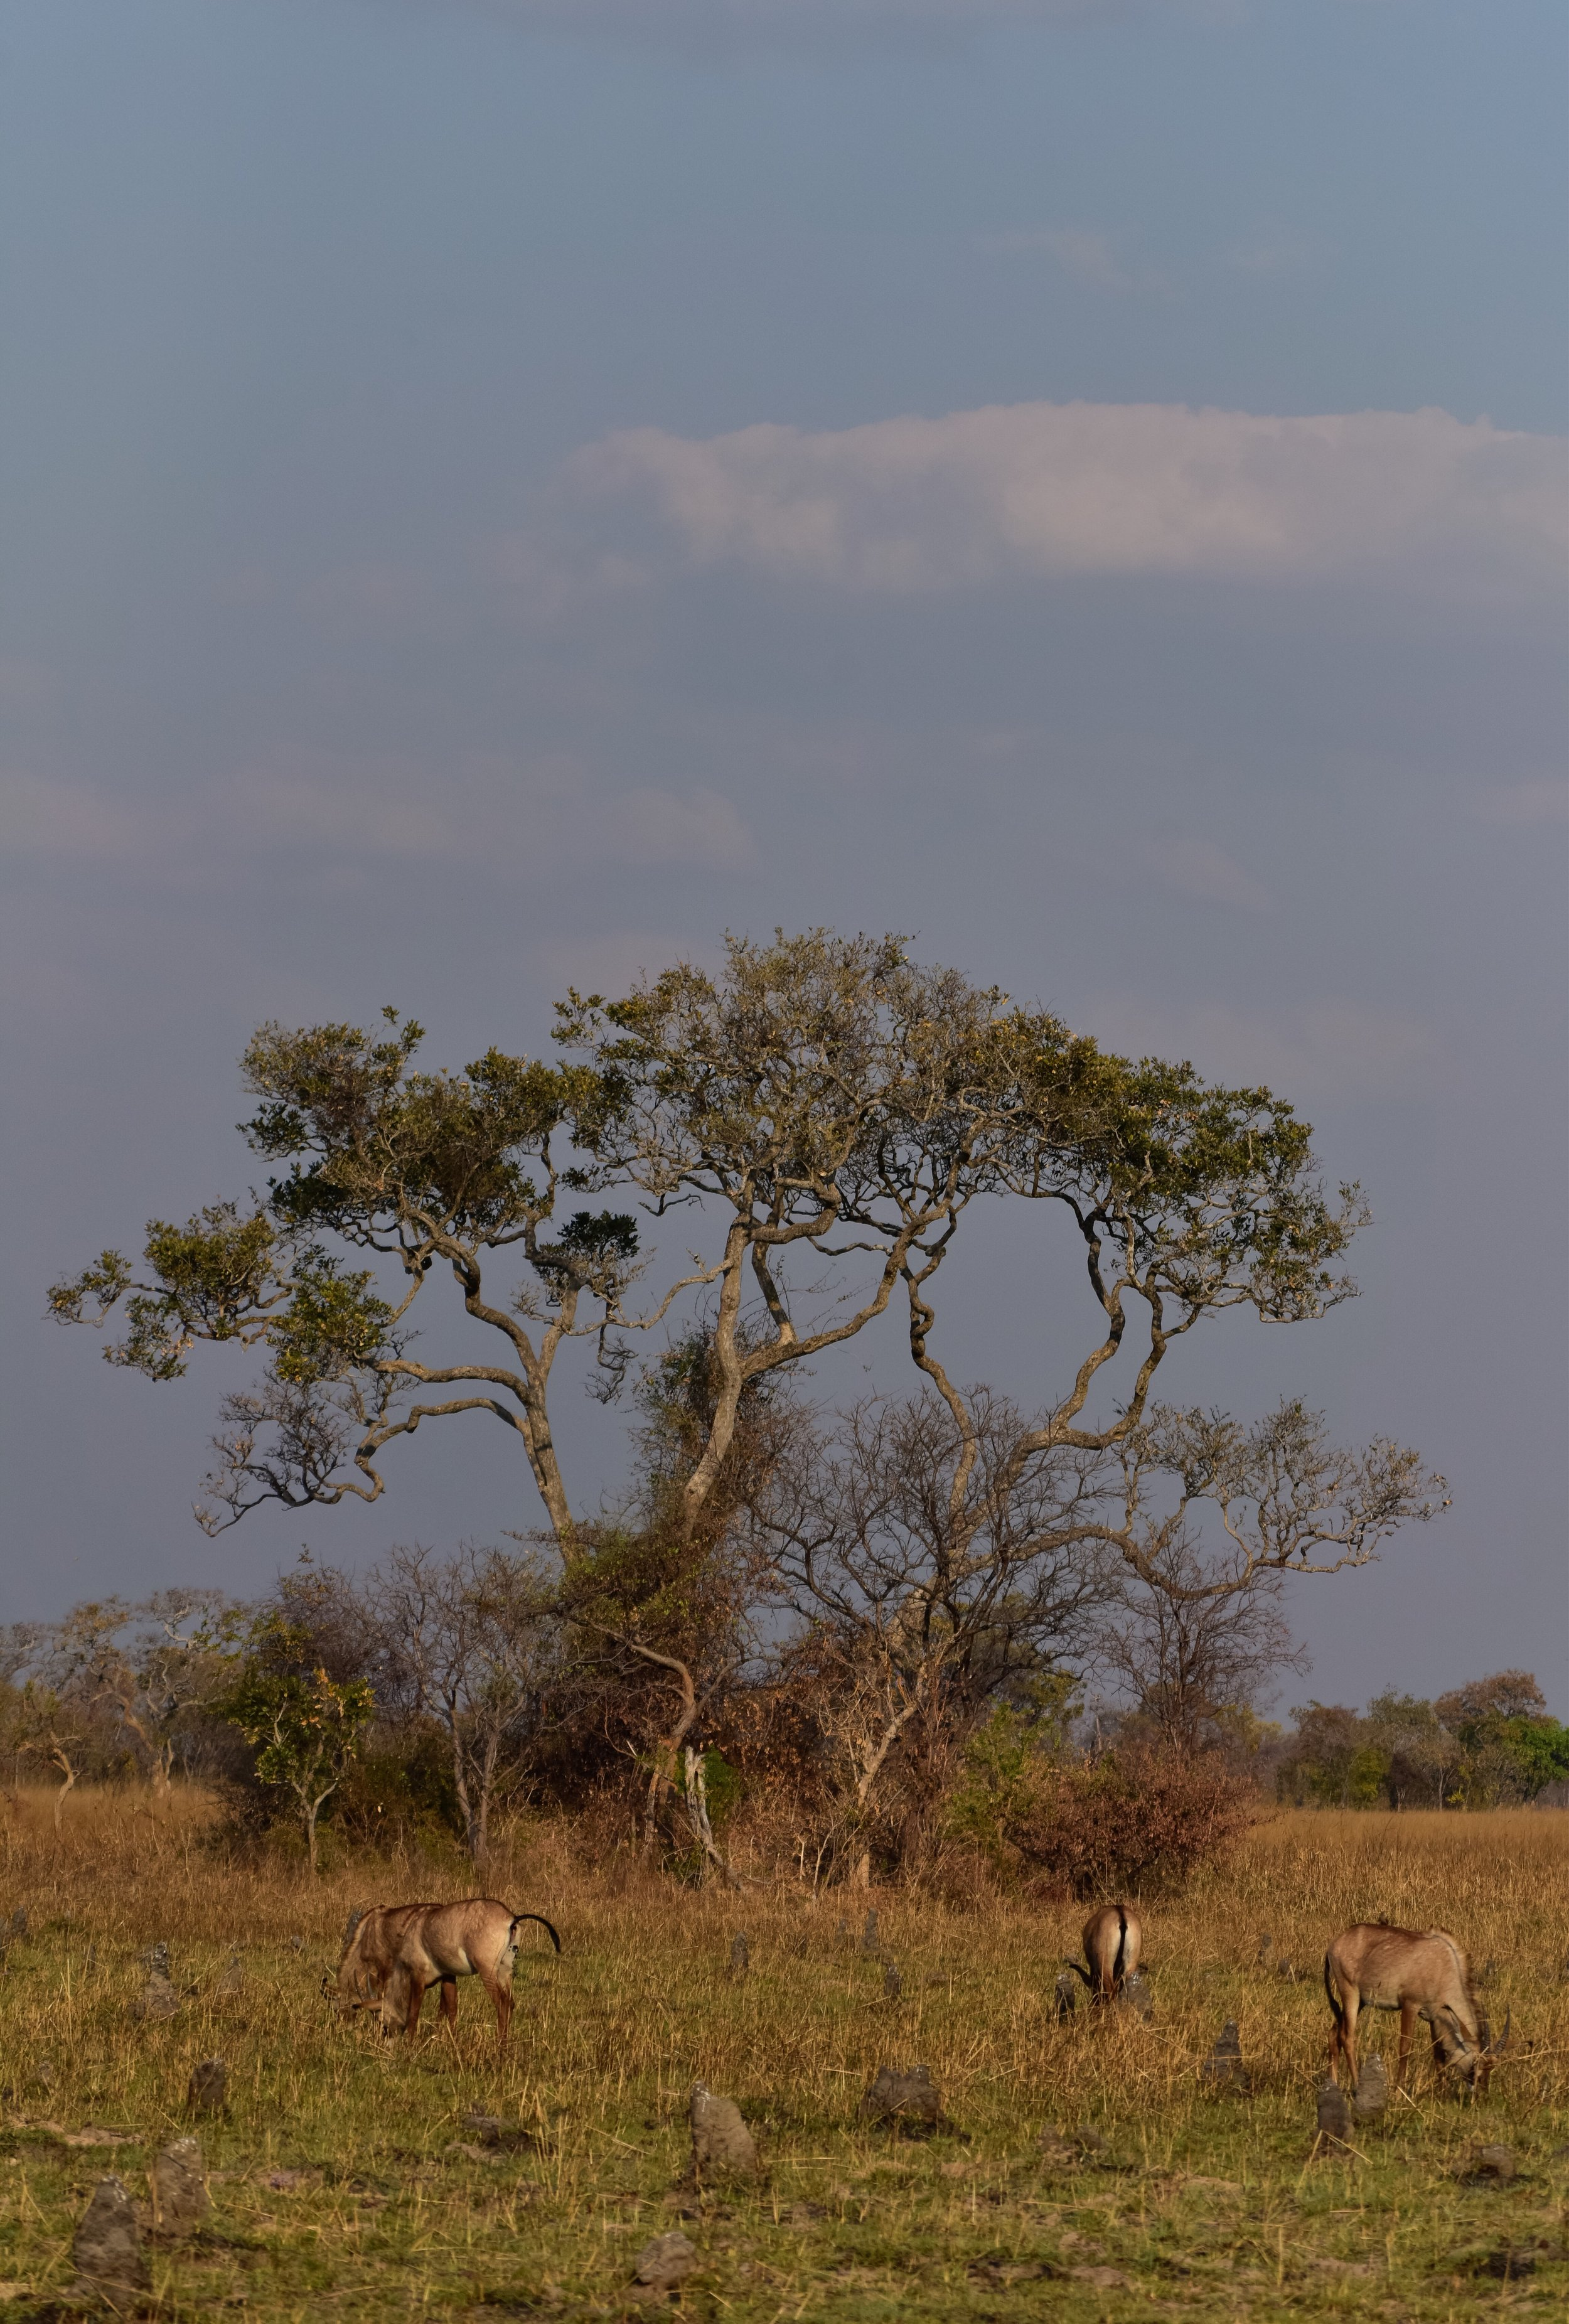 See those rock-like formations? Those are termite mounds. And the tree in the back is actually an island when the plains flood during the rainy season.